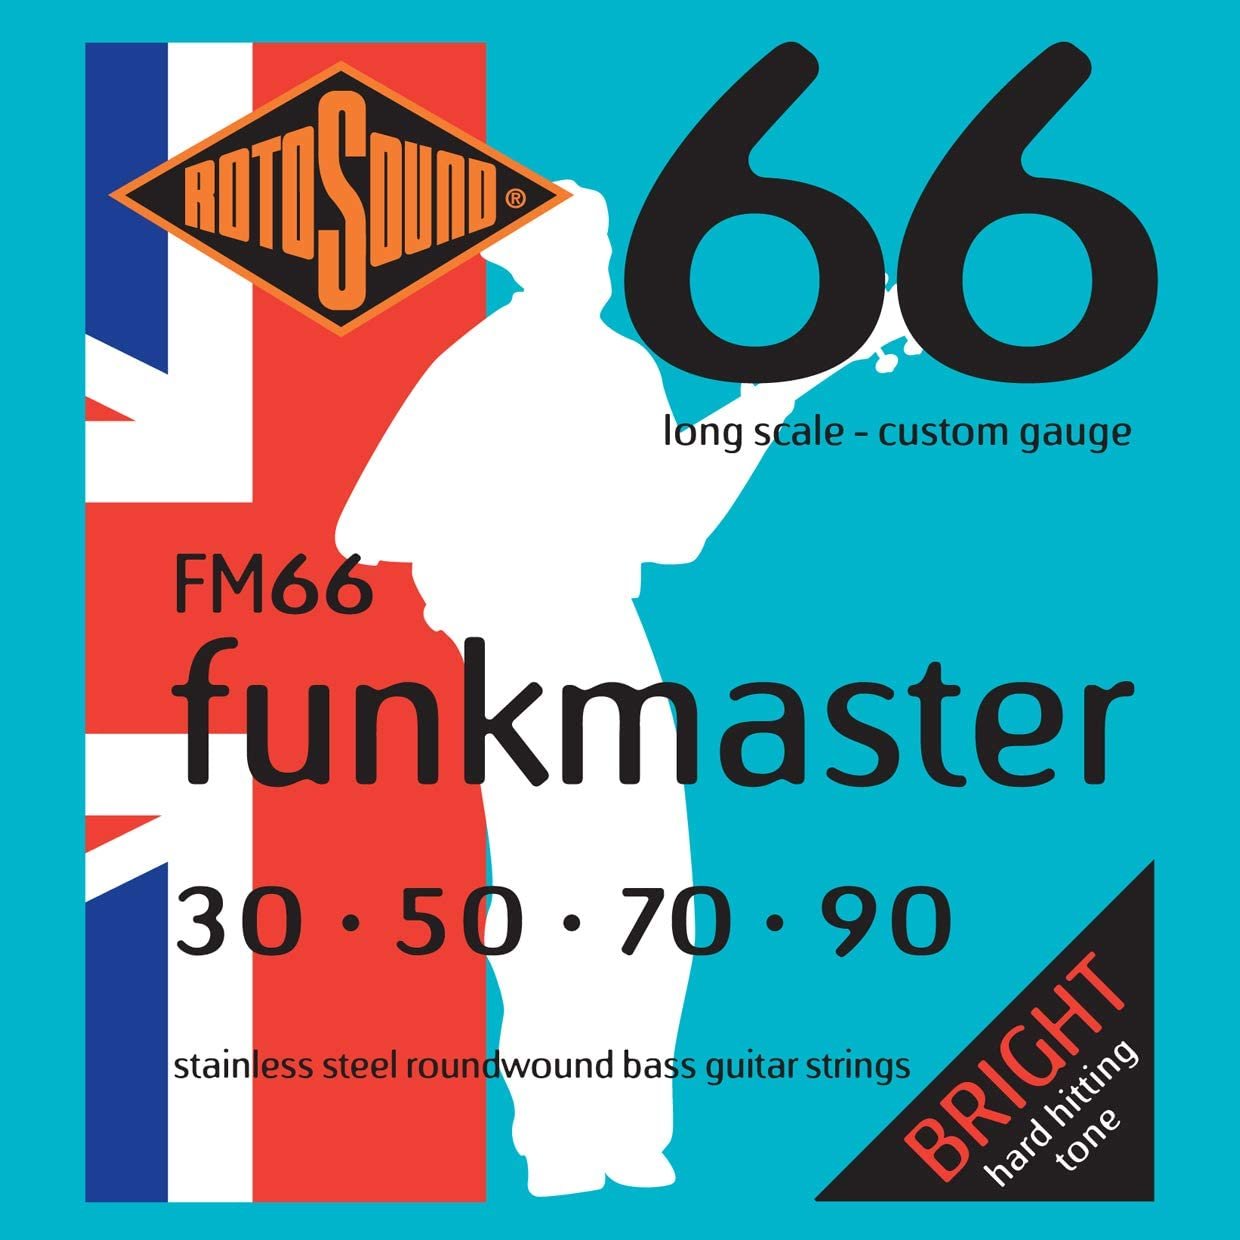 Rotosound FM66 Swing Bass 66 Stainless Steel Funkmaster Bass Guitar Strings